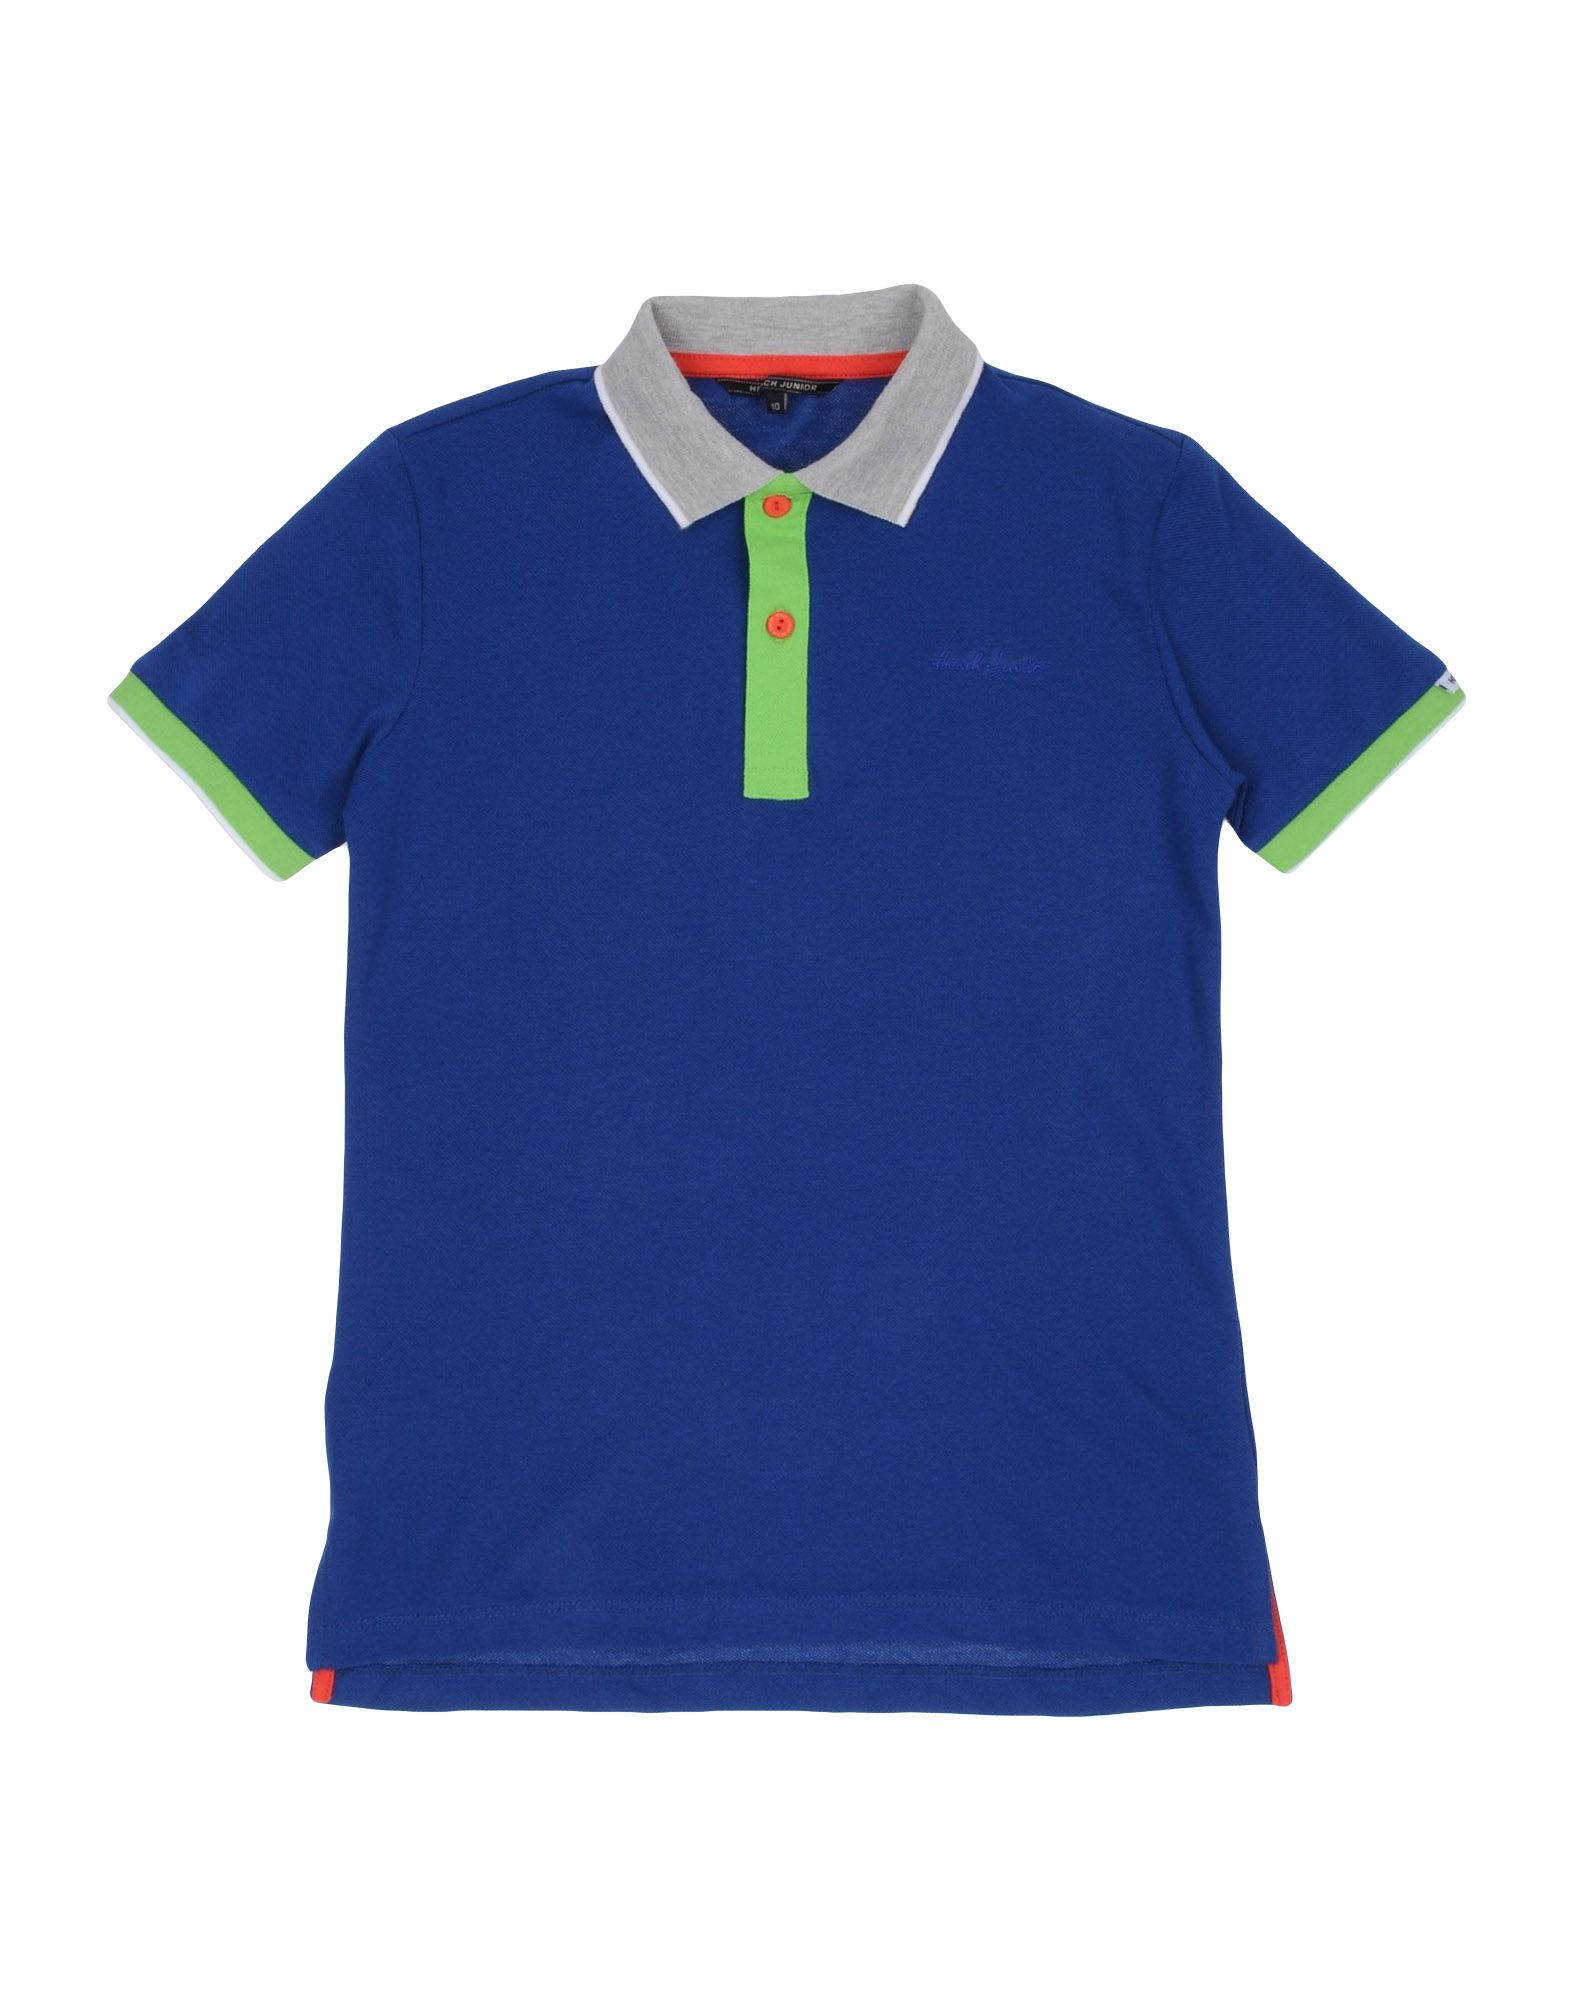 HEACH JUNIOR by SILVIAN HEACH Polo shirts